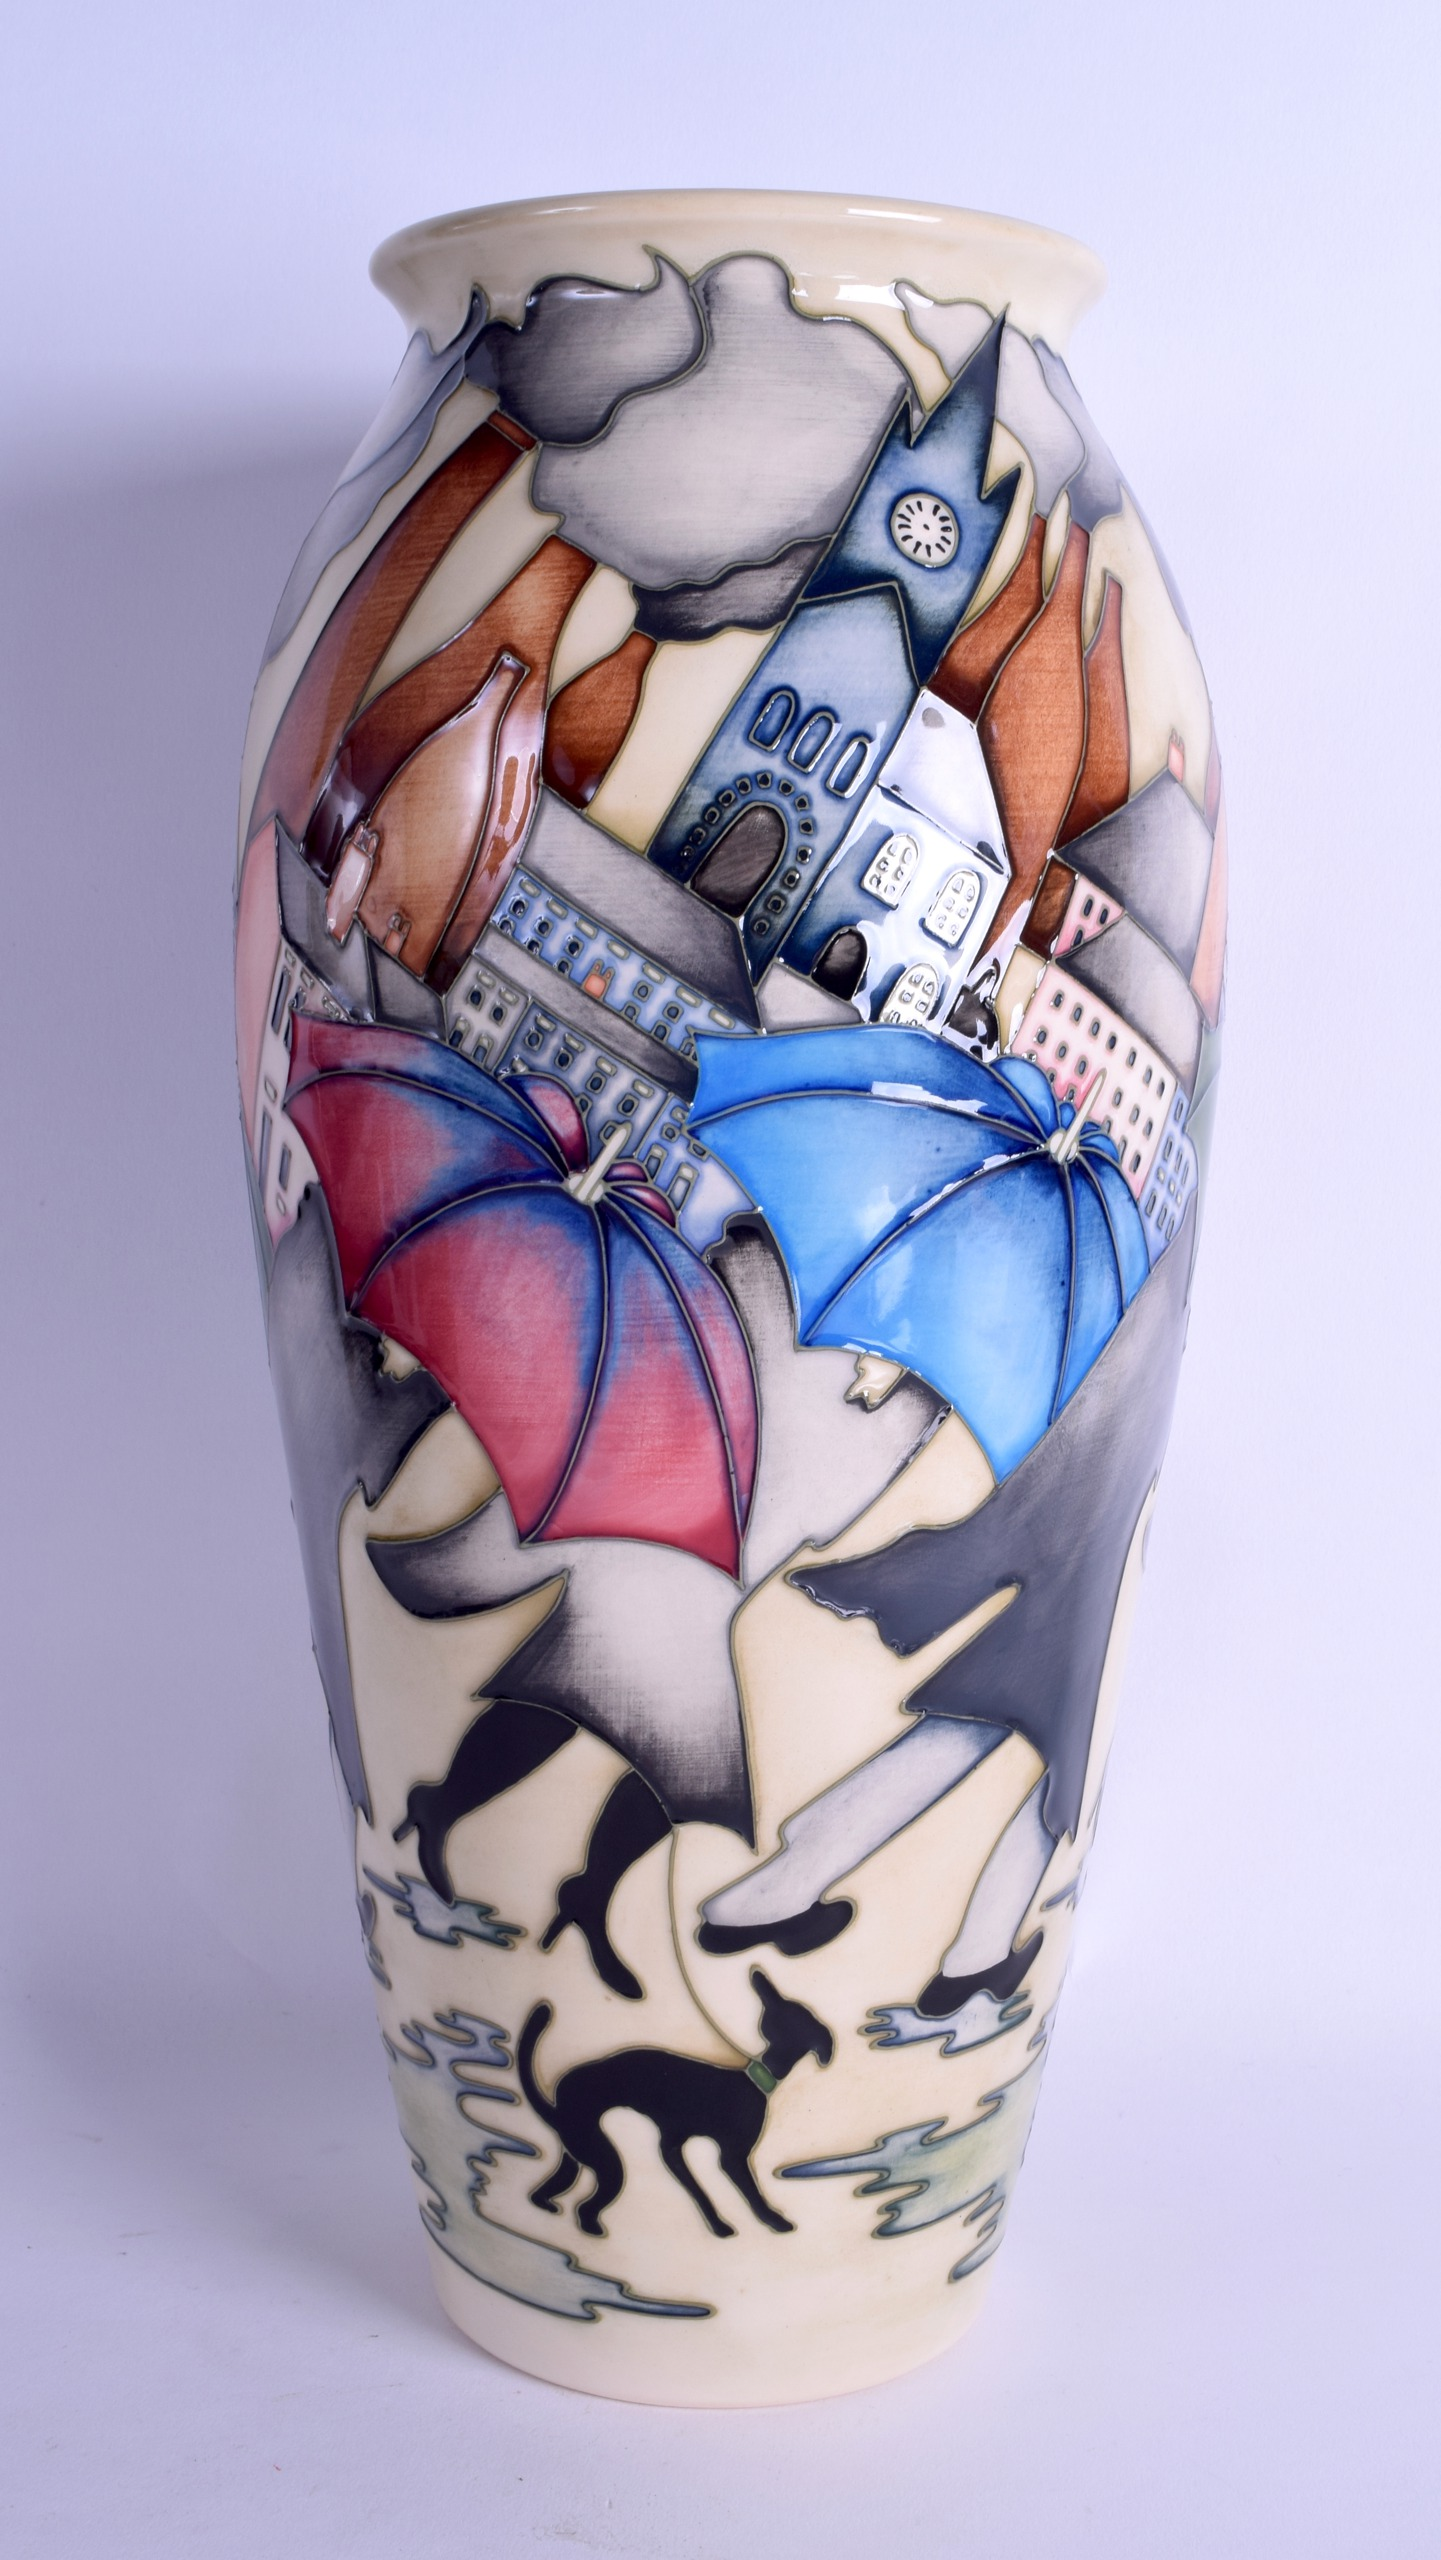 Lot 35 - A MOORCROFT 'POTTERIES IN RECESSION' VASE designed by Kerry Goodwin. No 2 of 150. 36 cm high.